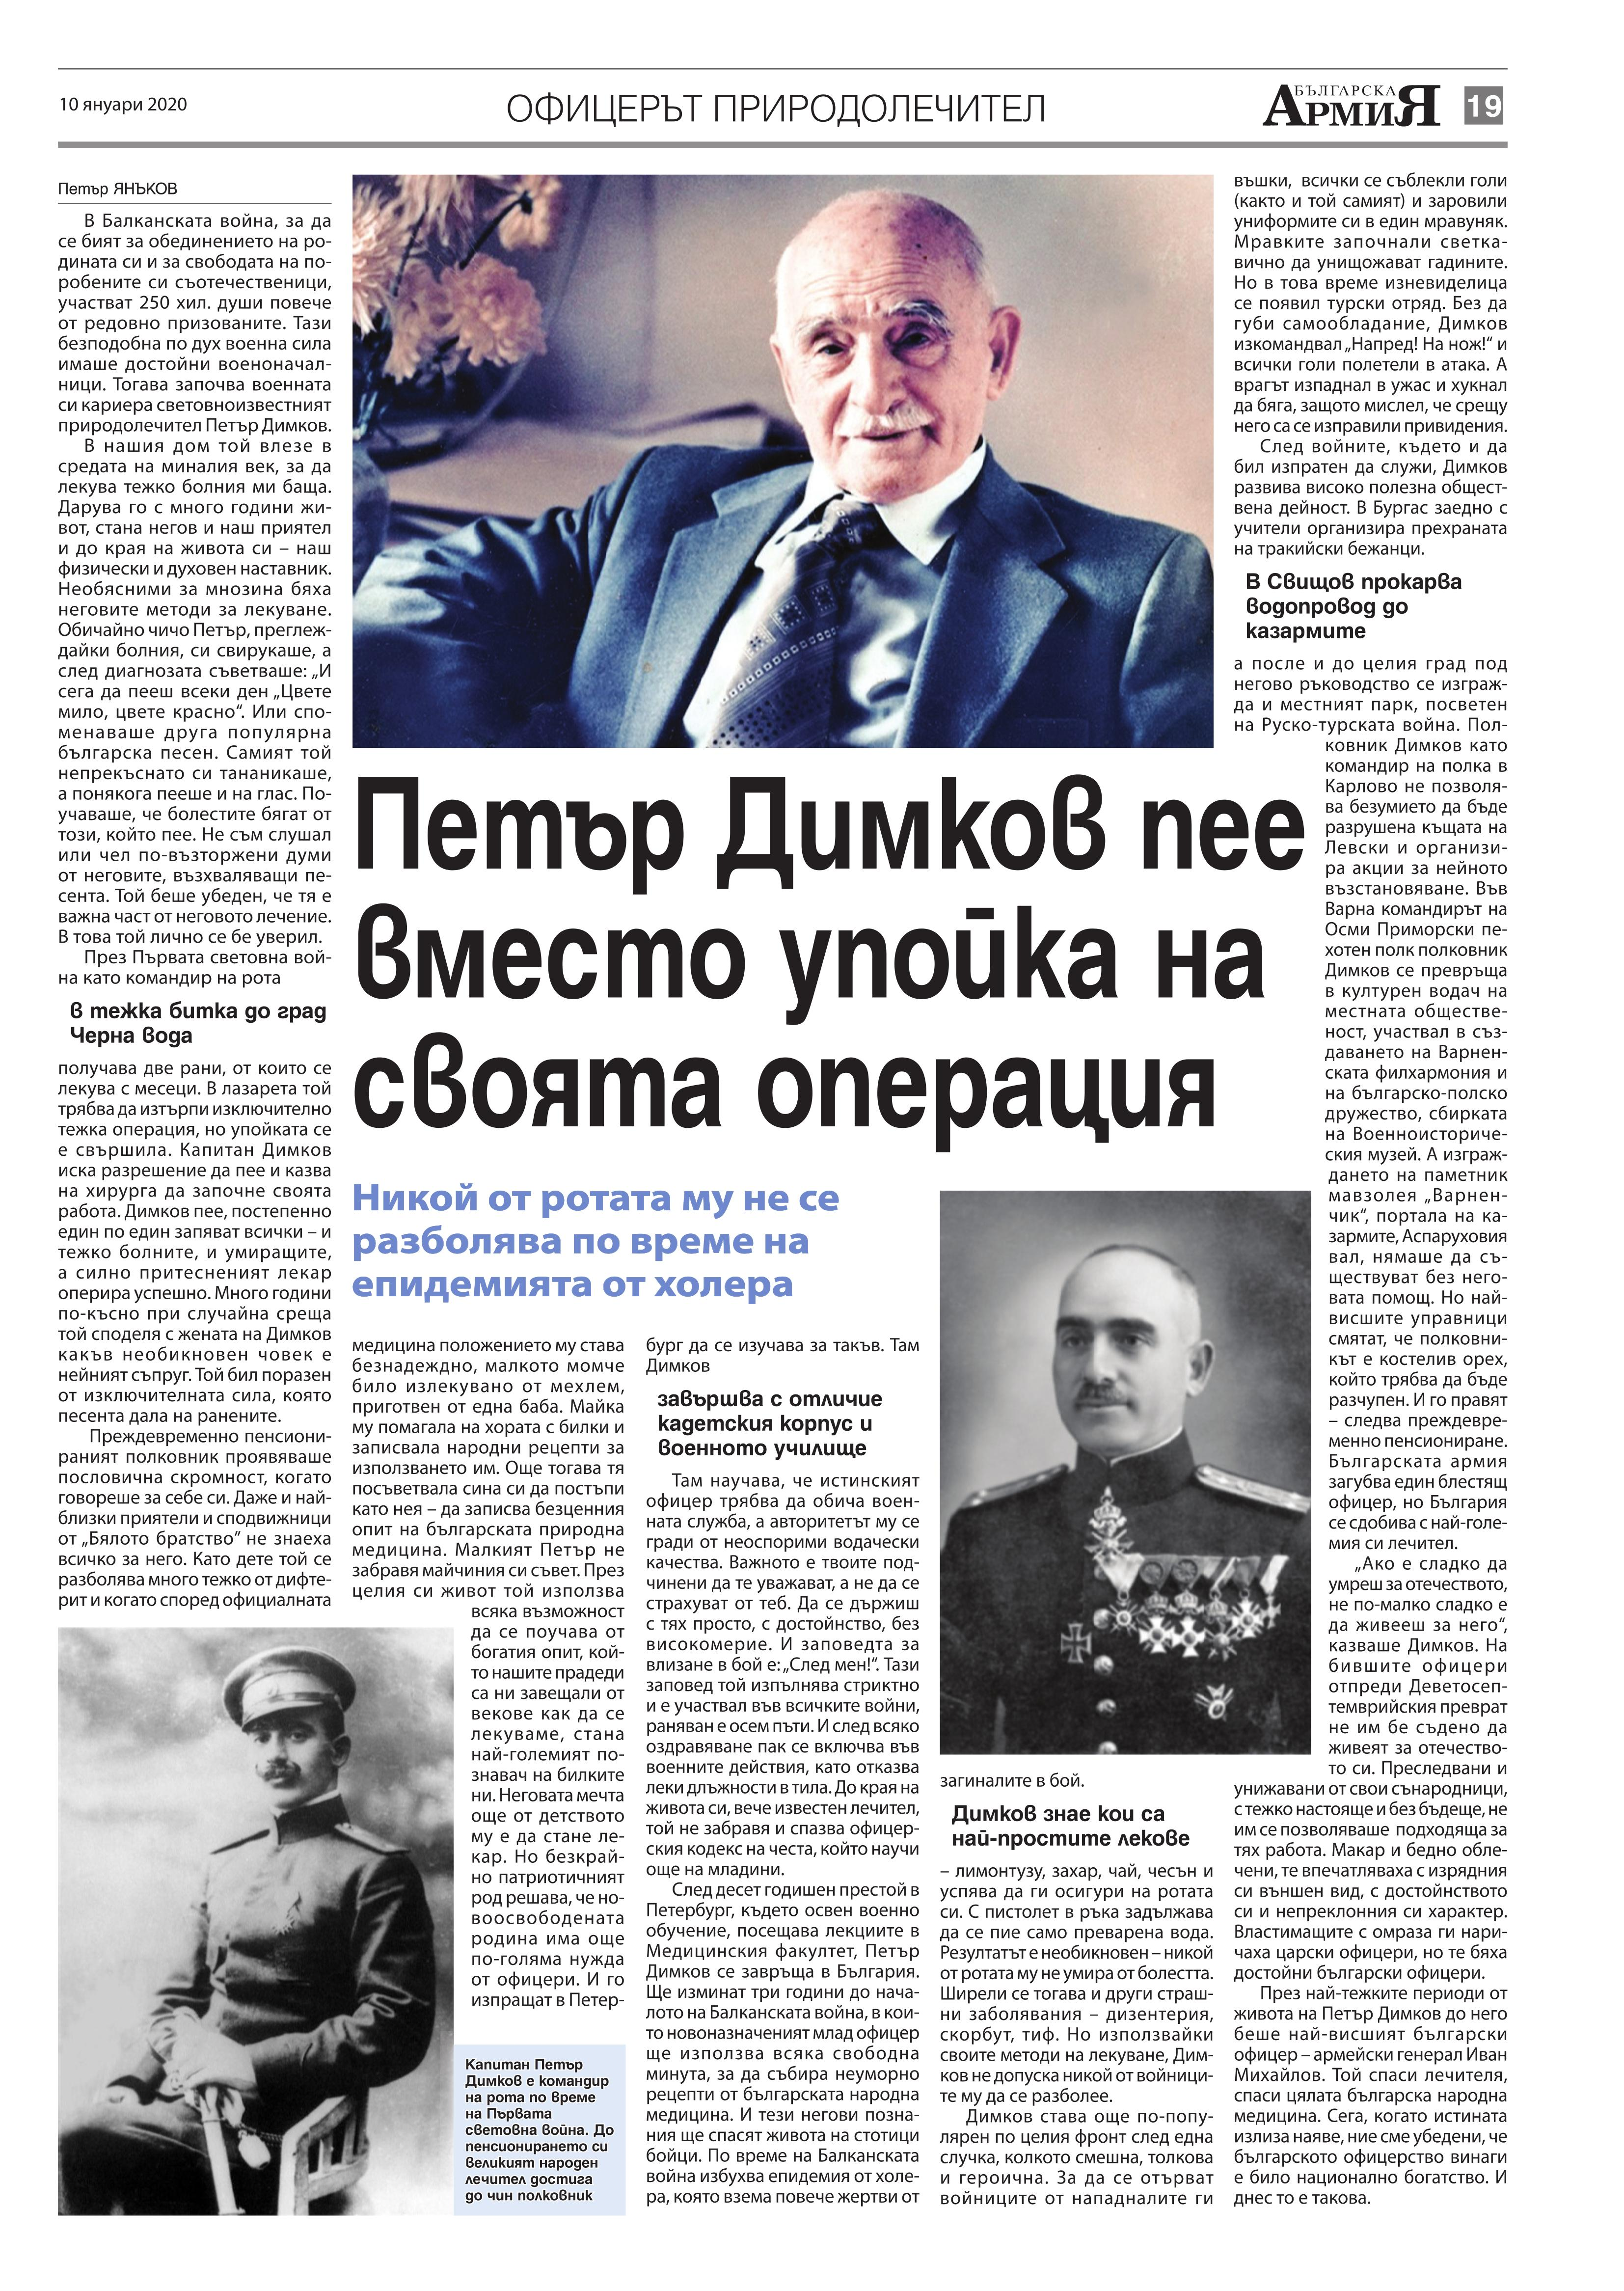 https://armymedia.bg/wp-content/uploads/2015/06/19.page1_-123.jpg